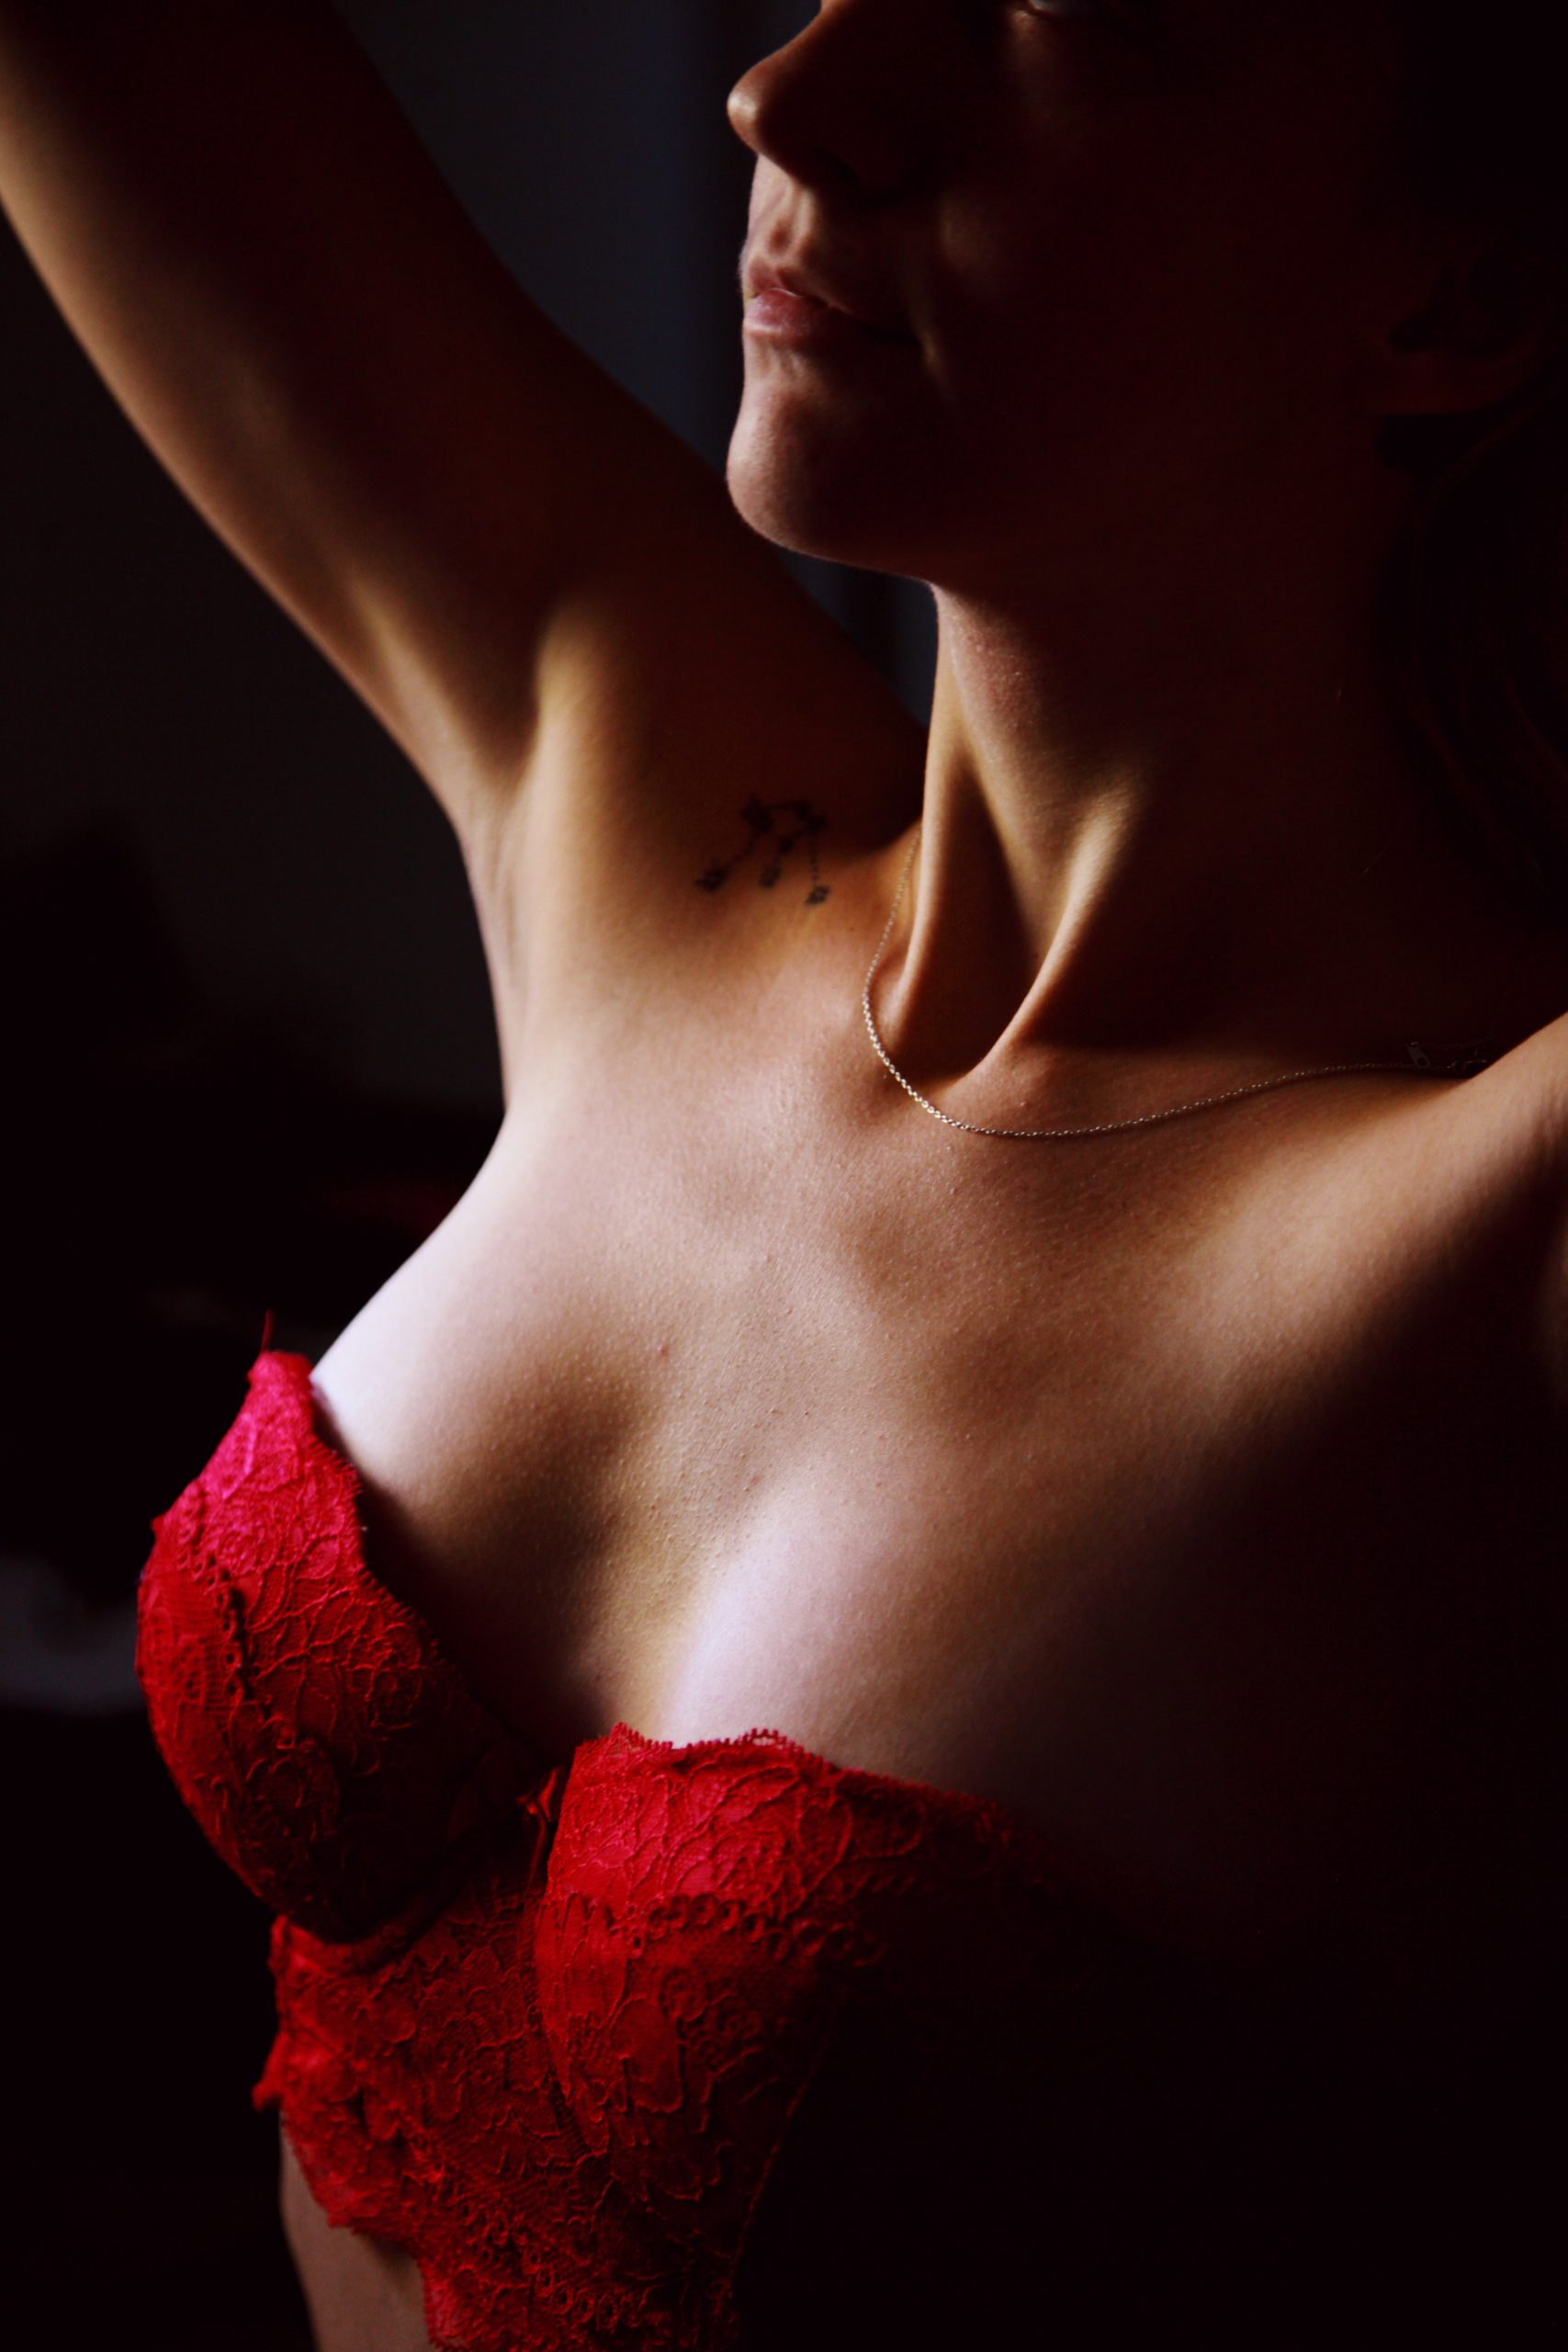 close-up-photo-of-woman-wearing-red-bralette-1548680